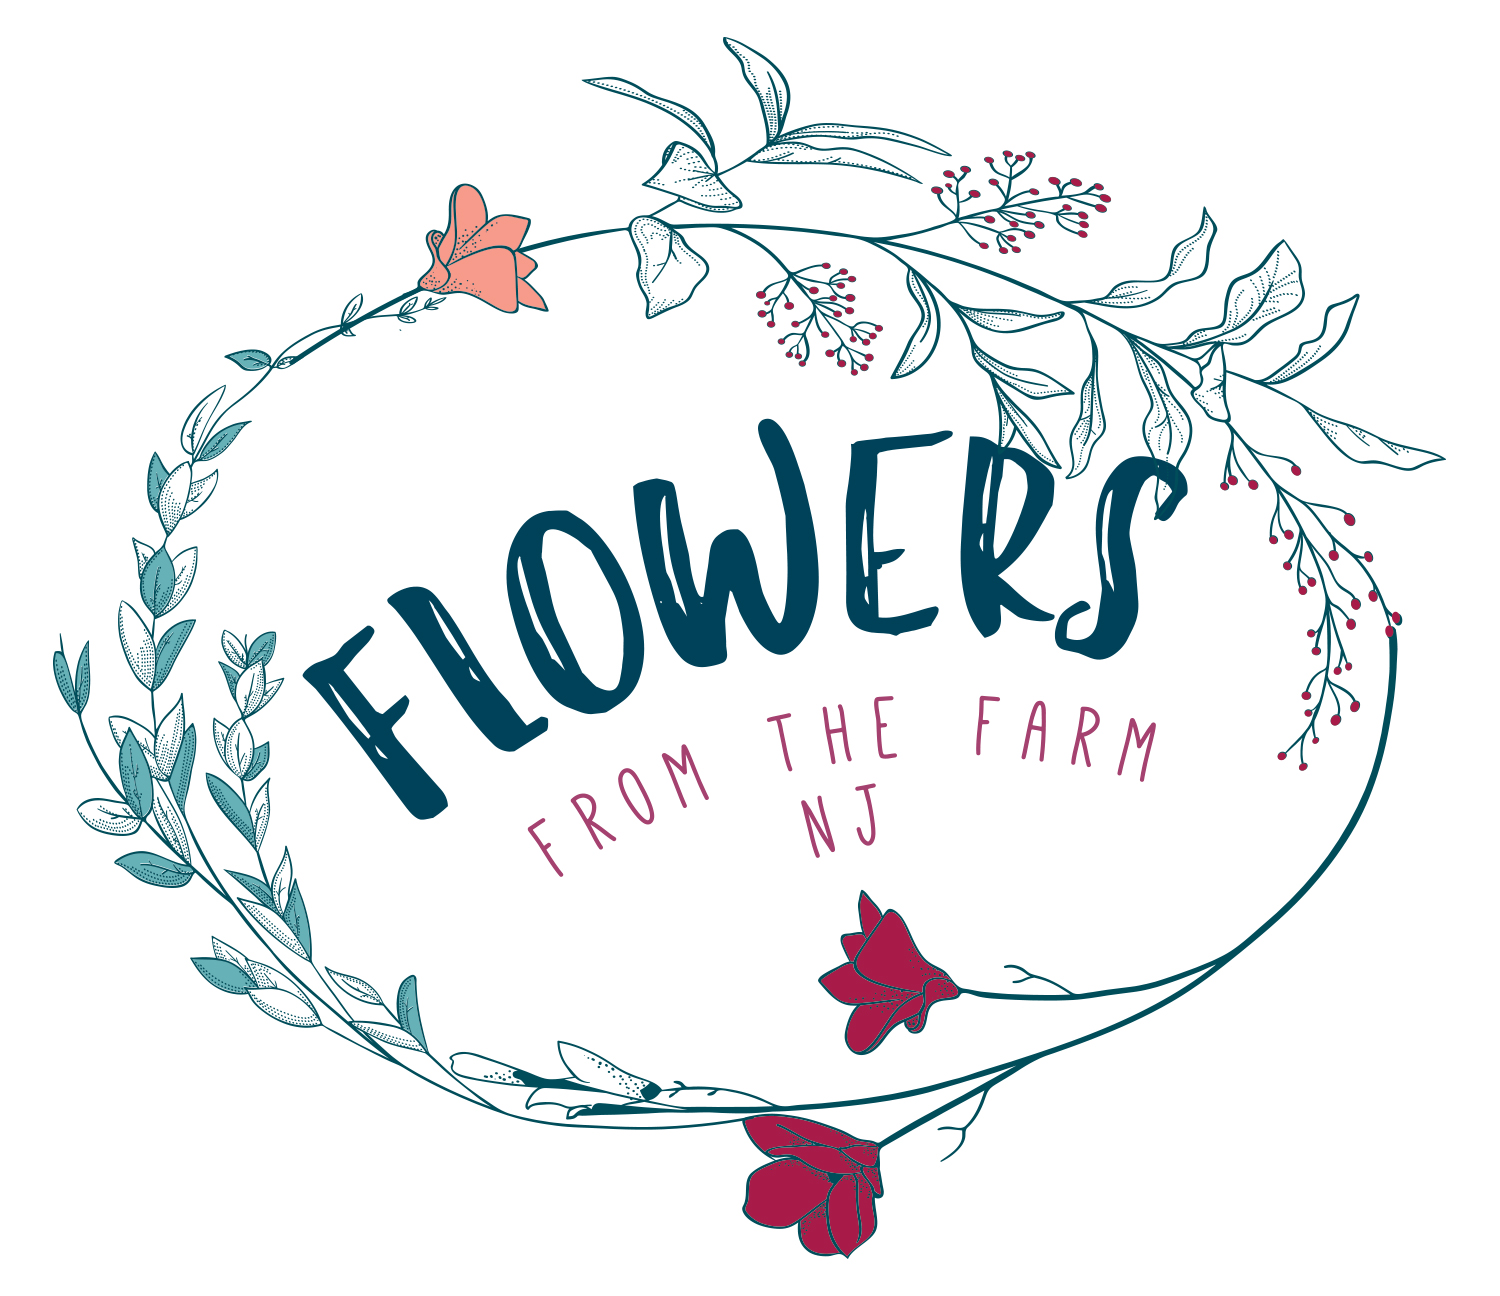 flowers_from_the_garden_nj_logo_FINAL_outlines_REV+(2).jpg